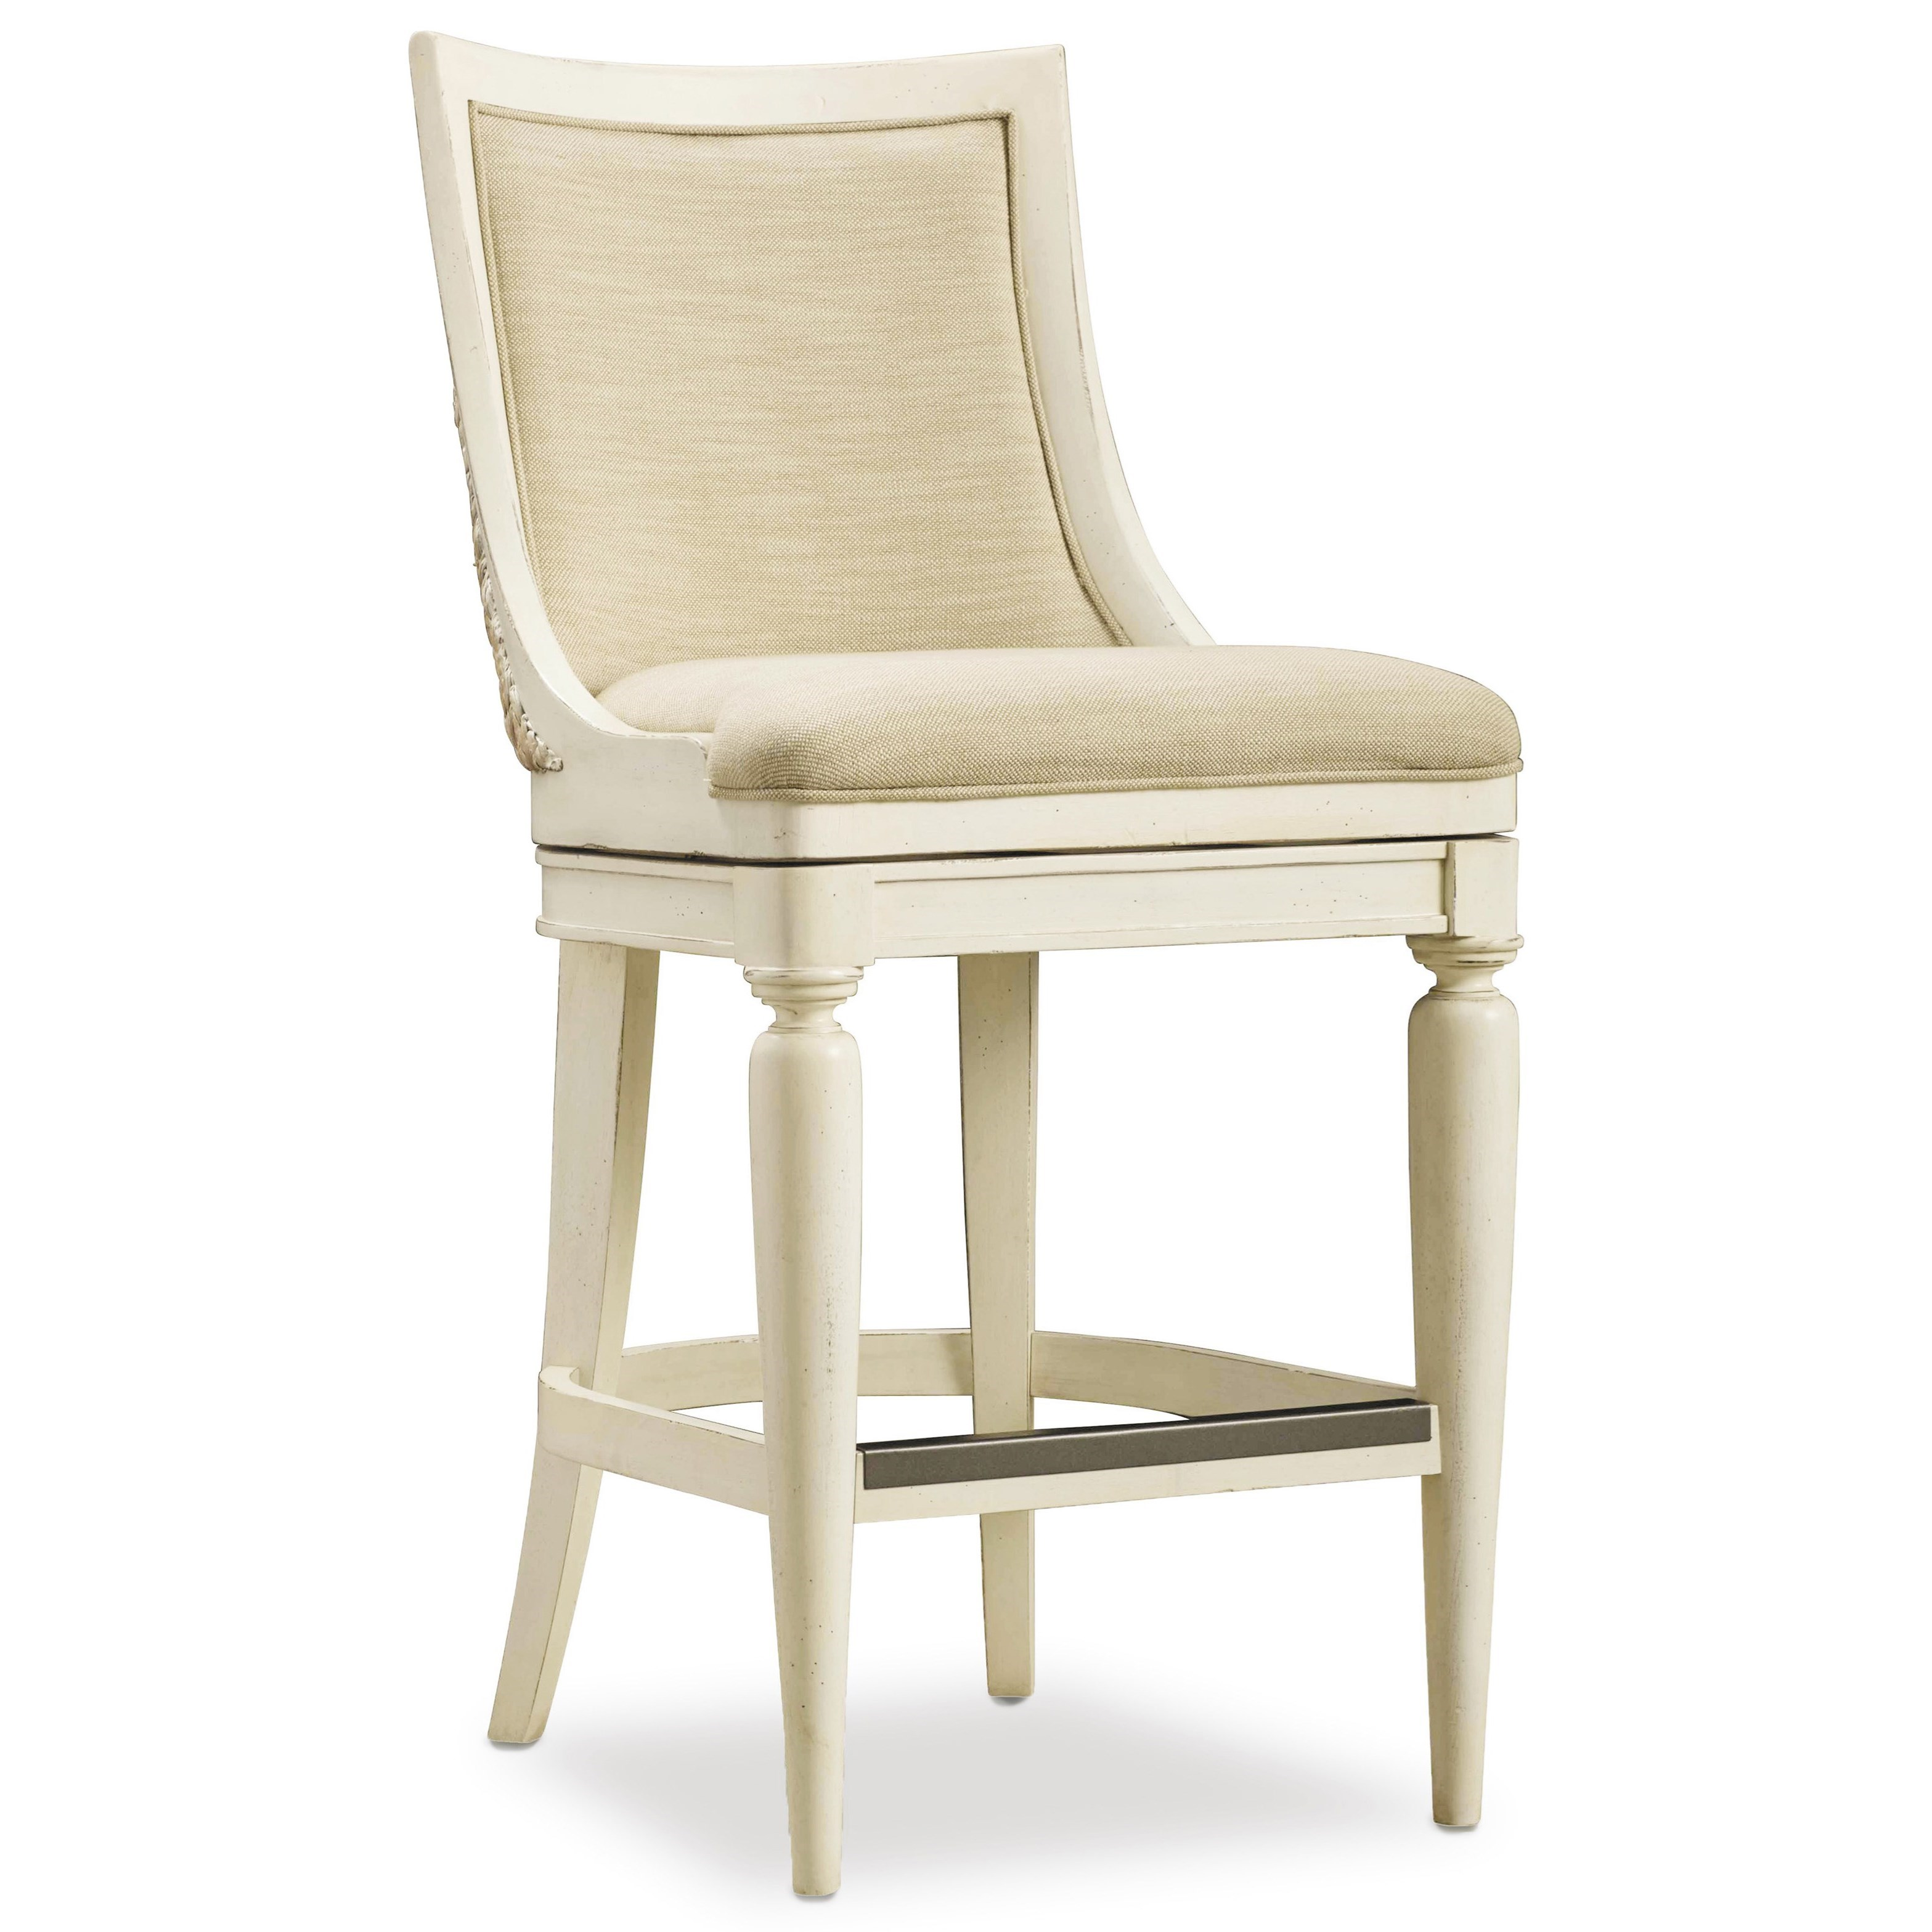 Hooker Furniture Sandcastle Barstool - Item Number: 5900-20360-WH